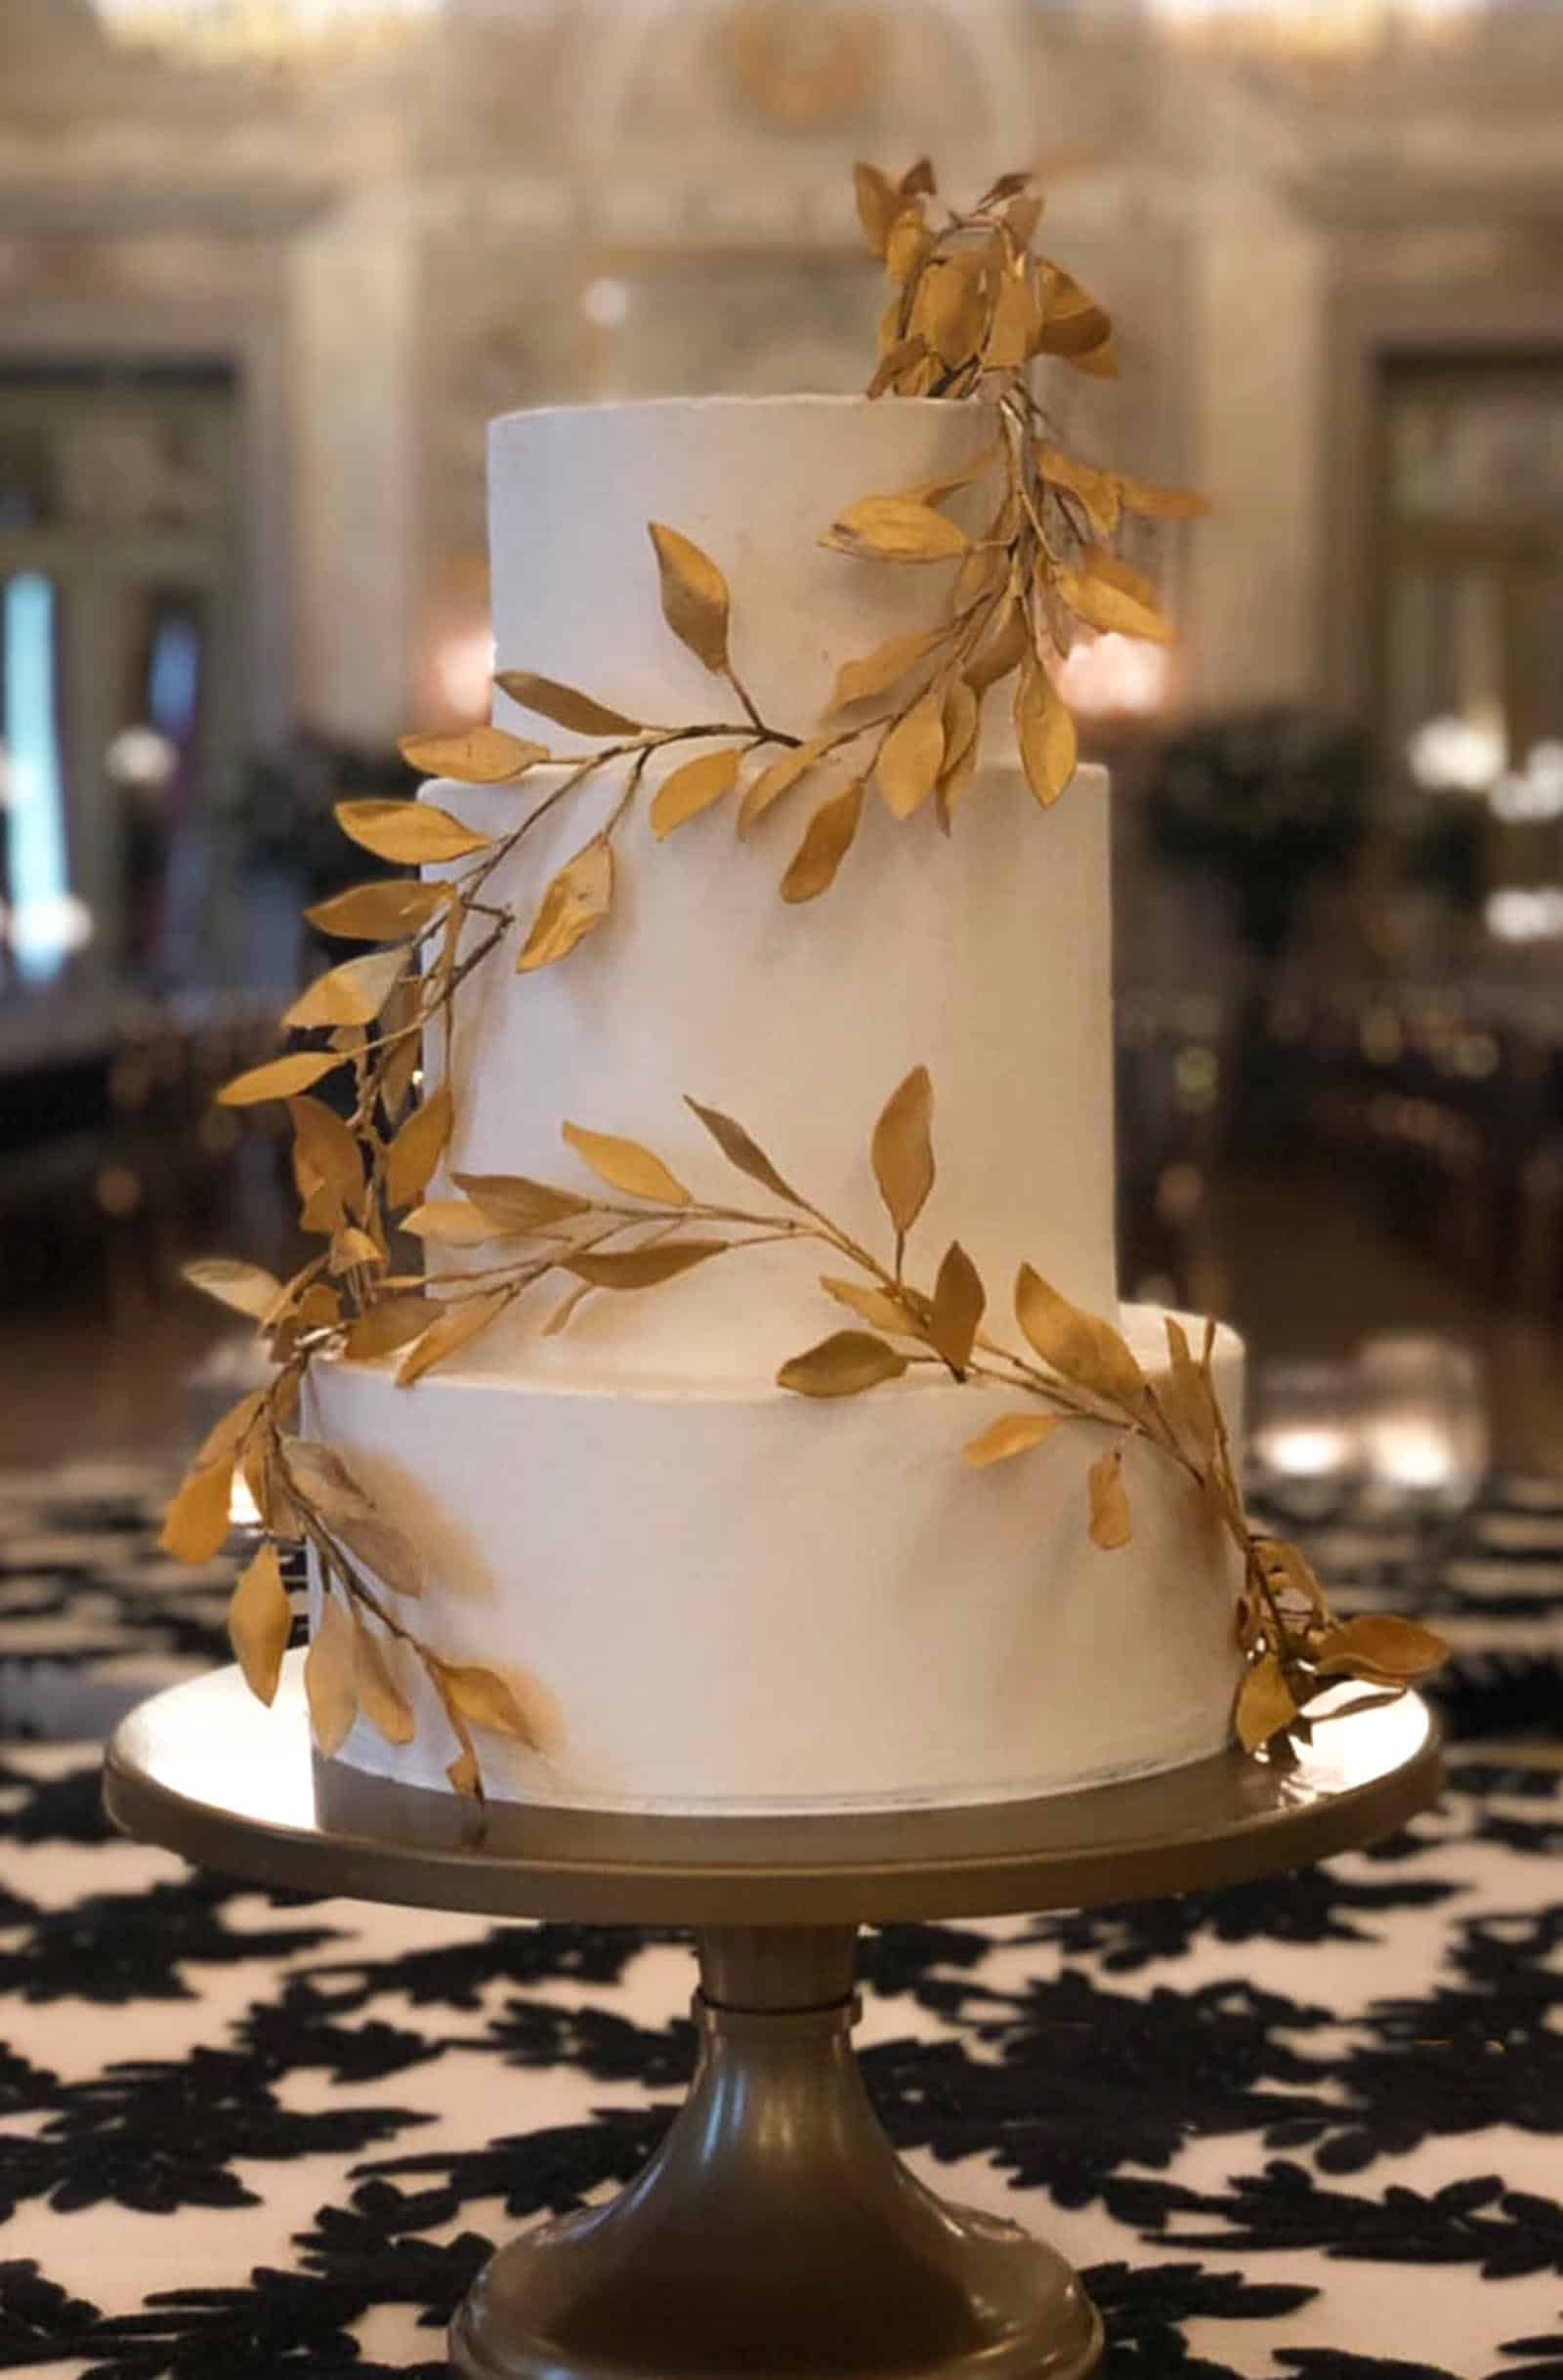 Buttercream and Gold Branch Wedding Cake at Westin Excelsior in Florence Italy by Tuscan Wedding Cakes